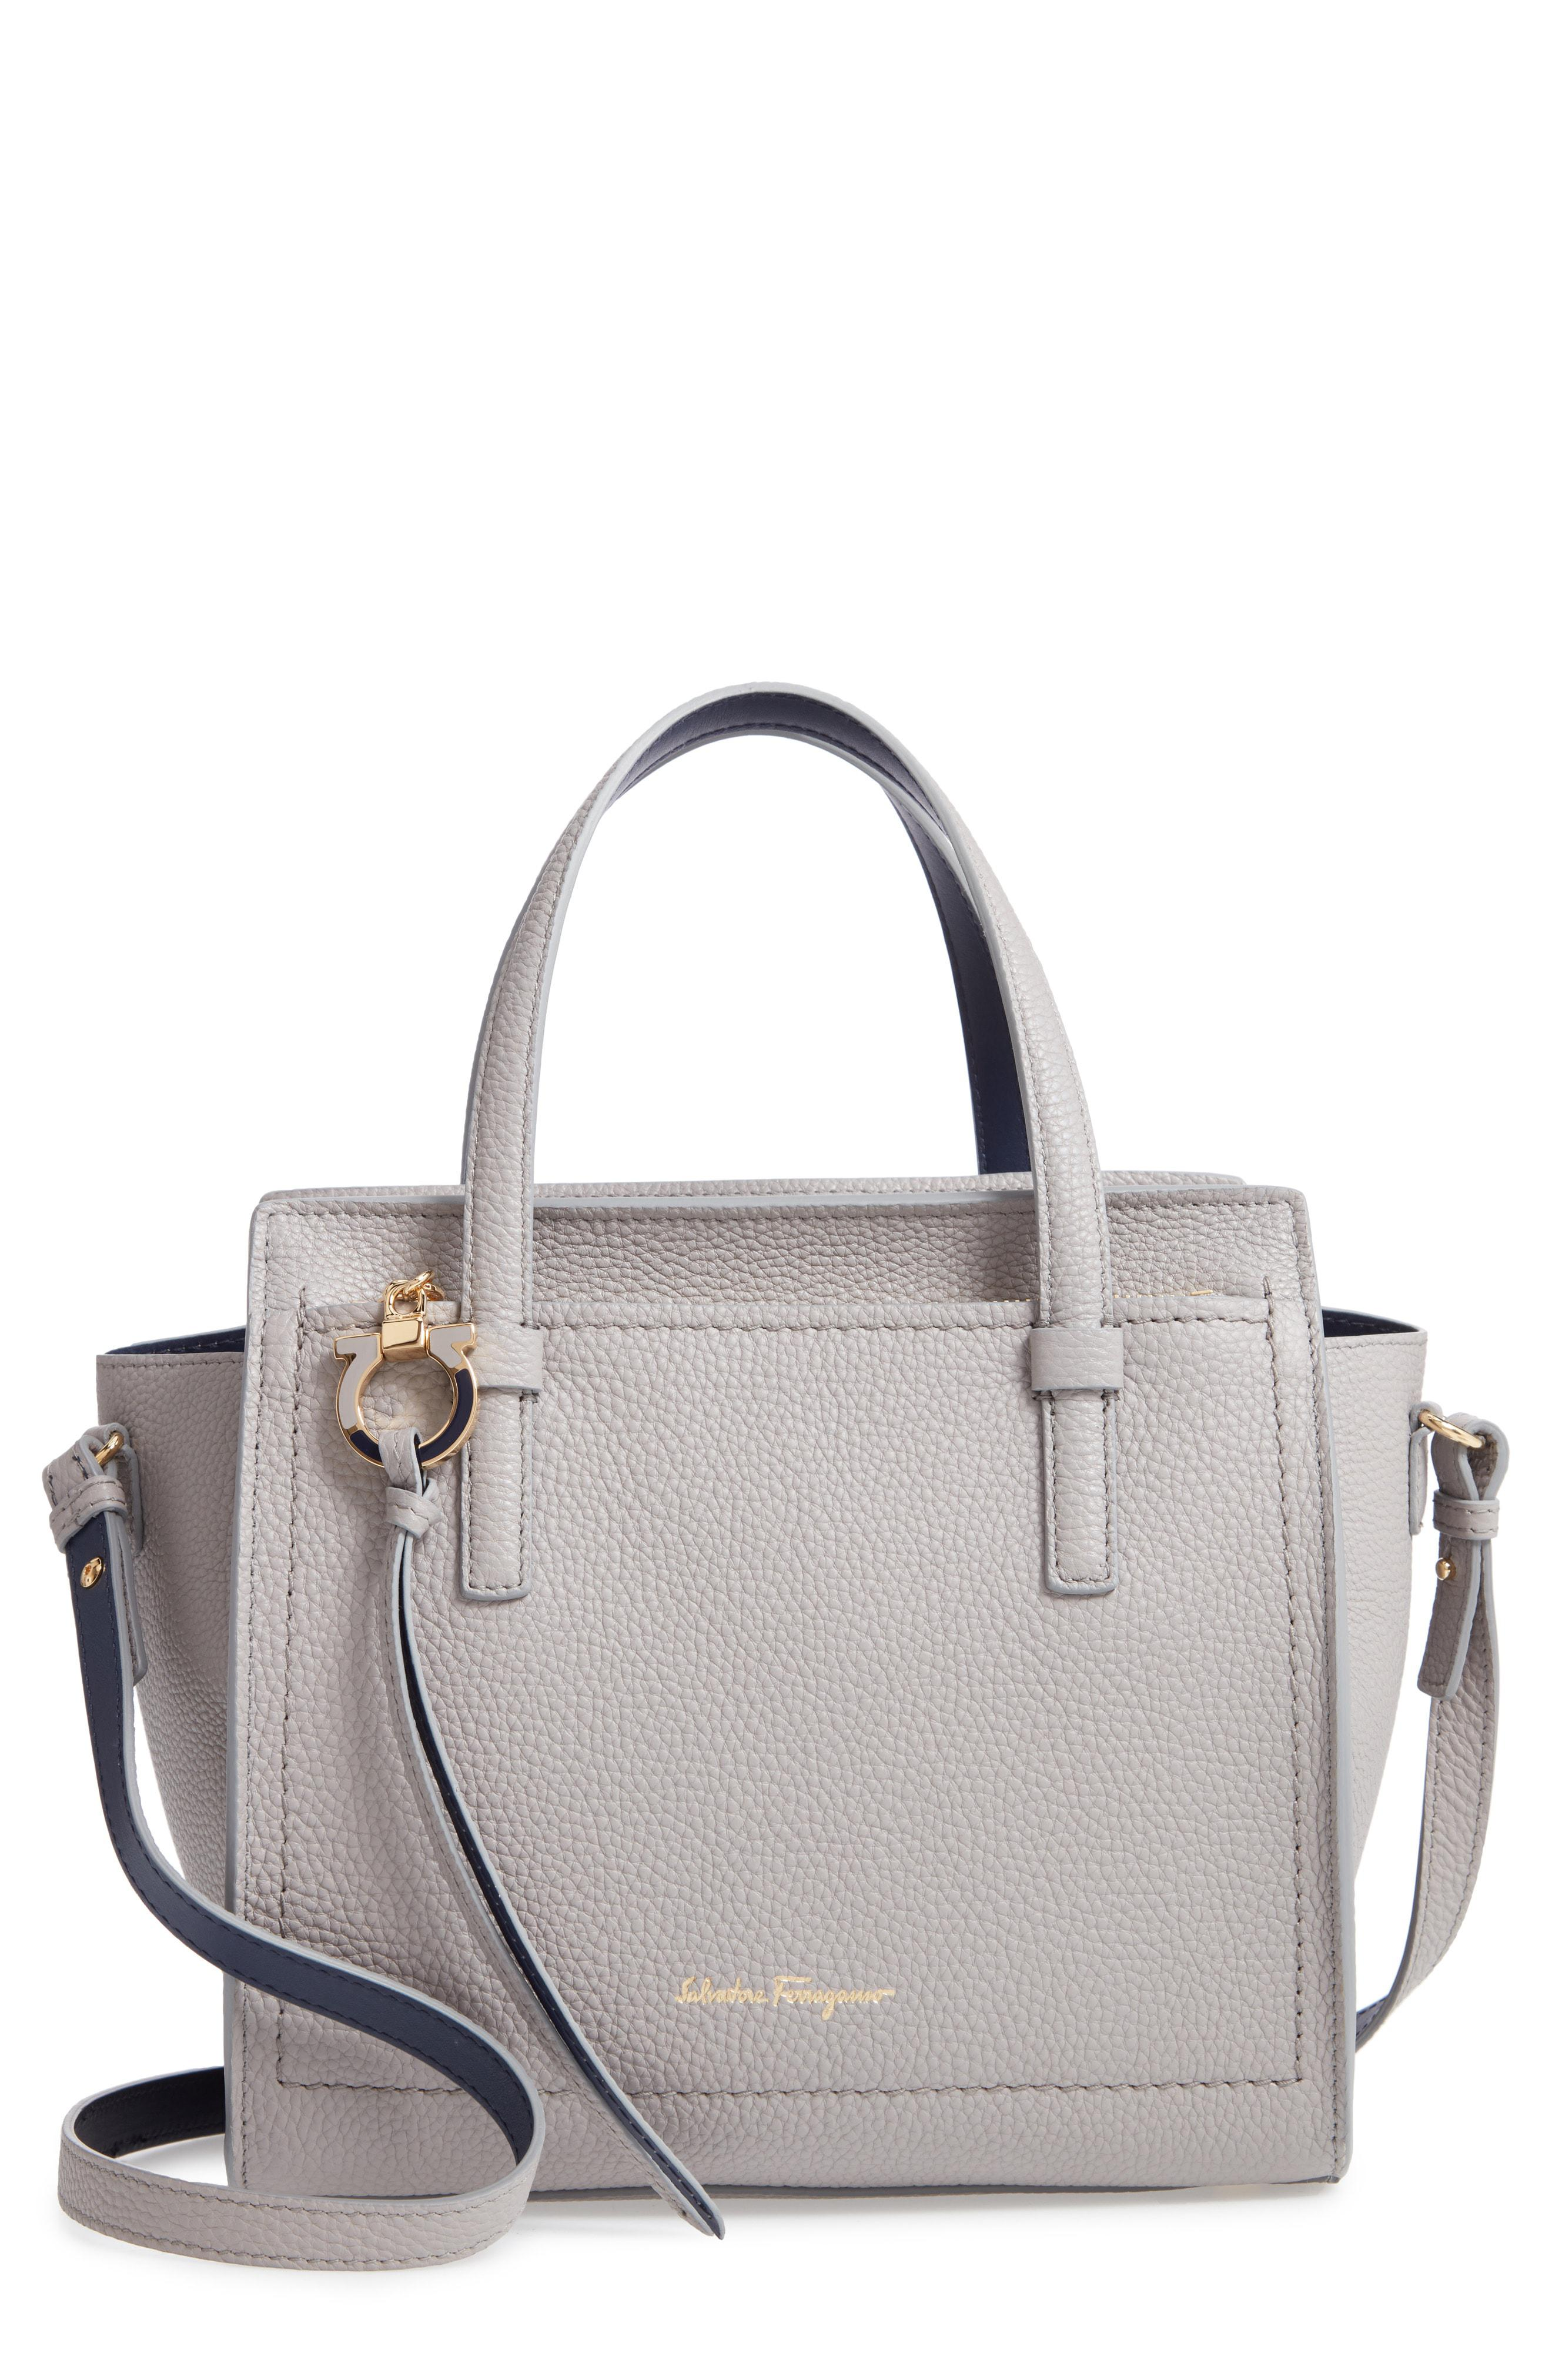 cd756e98e3886 Lyst Ferragamo Amy Piccolo Leather Tote In Gray. Cross Body Ferragamo  Medium Gancini Shoulder ...